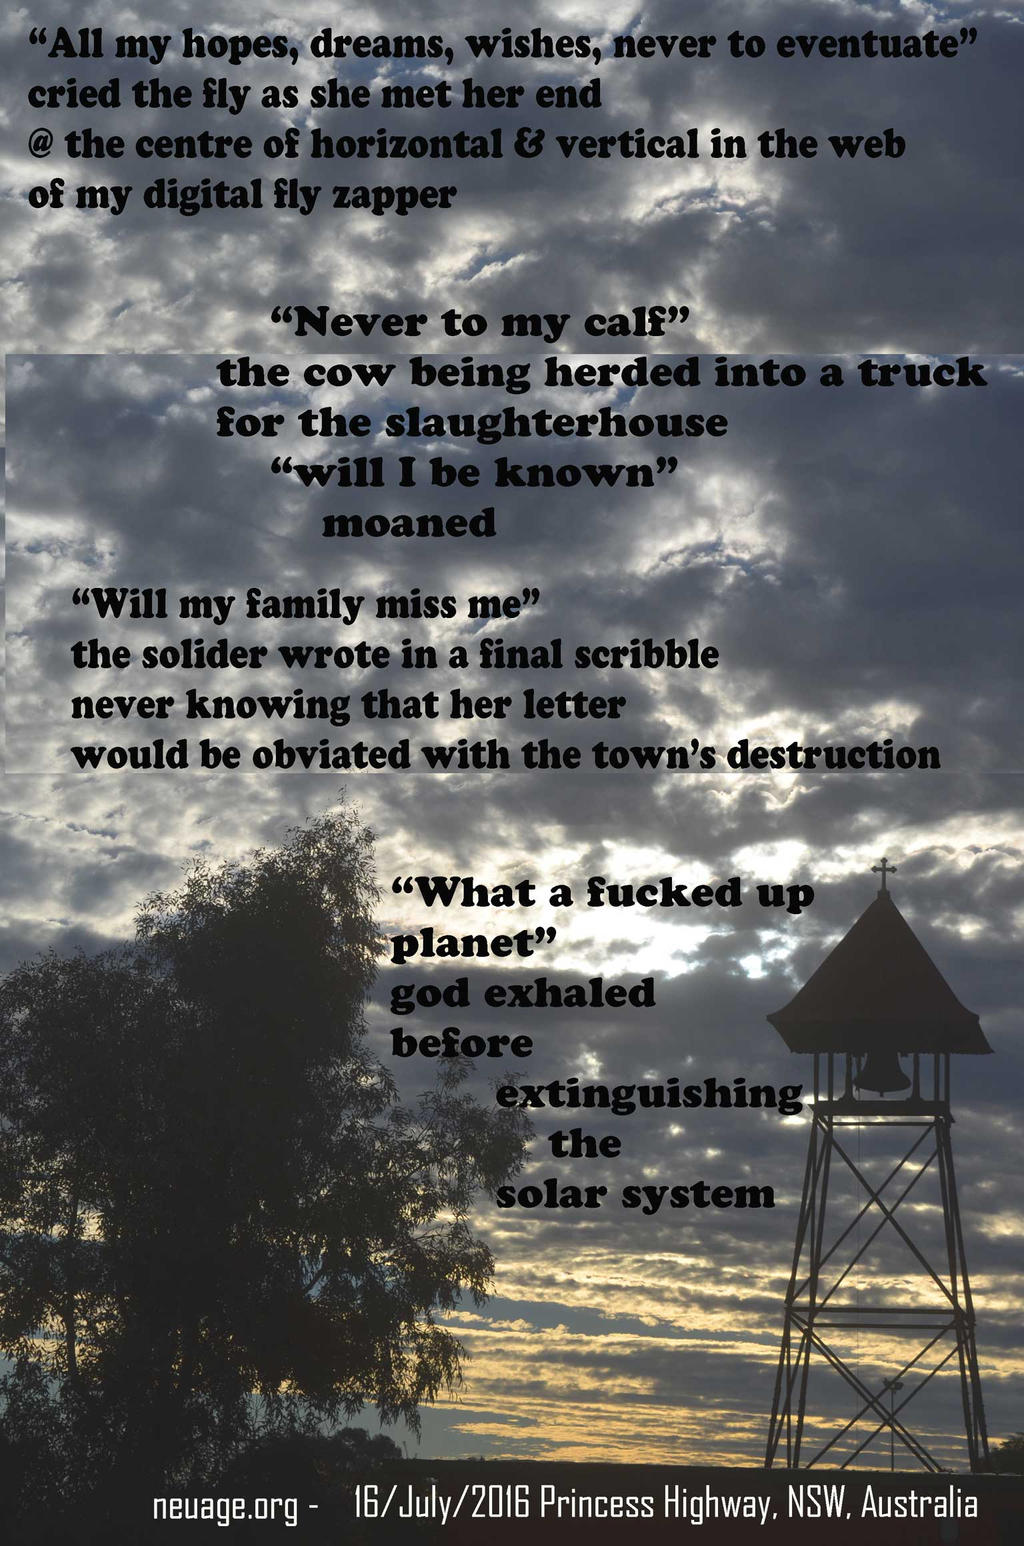 All my hopes dreams wishes never to eventuate by terrell-neuage